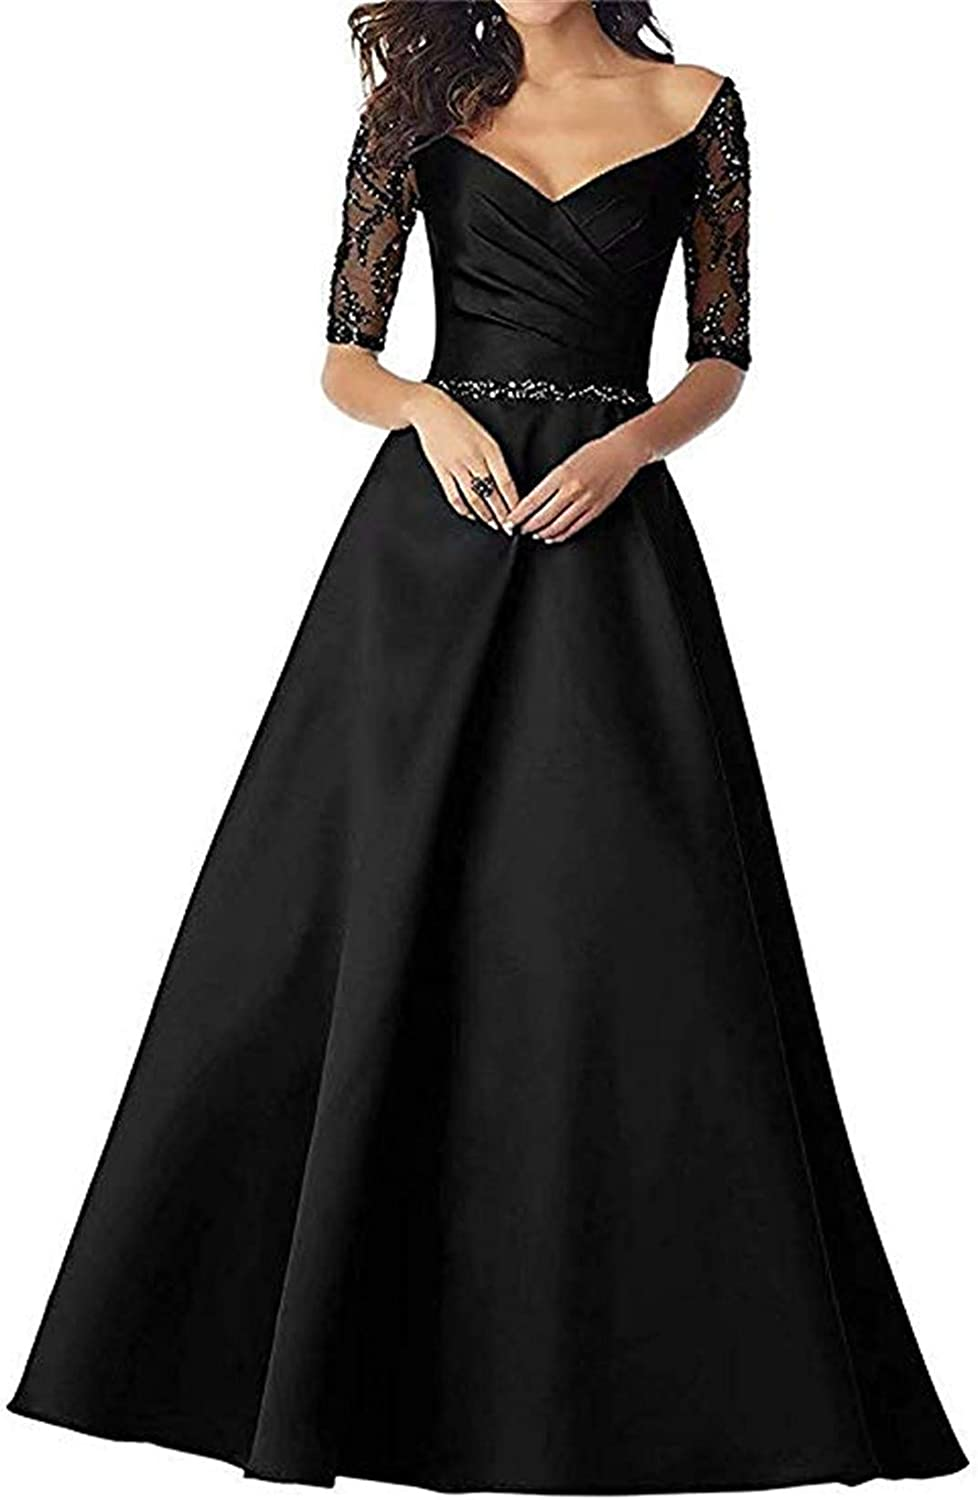 Scarisee Womens Half Sleeves VNeck Evening Prom Dresses Beaded Mother's Gown189